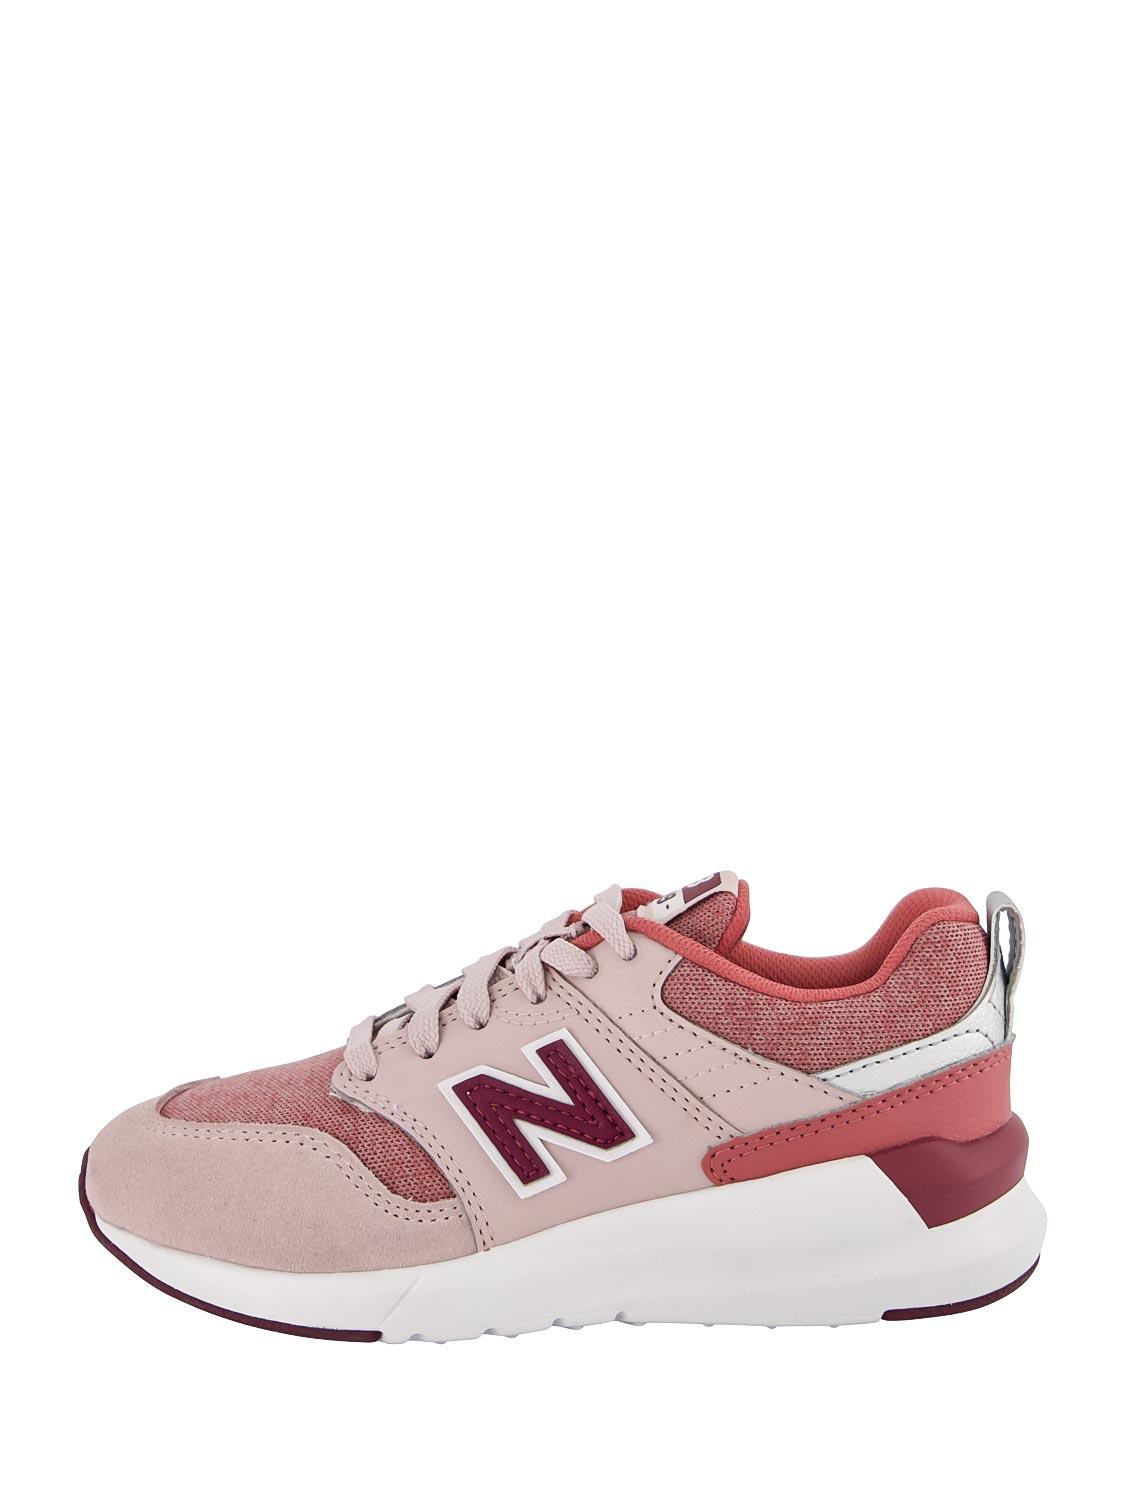 NEW BALANCE sneakers YS009 pink for girls  NICKIS.com